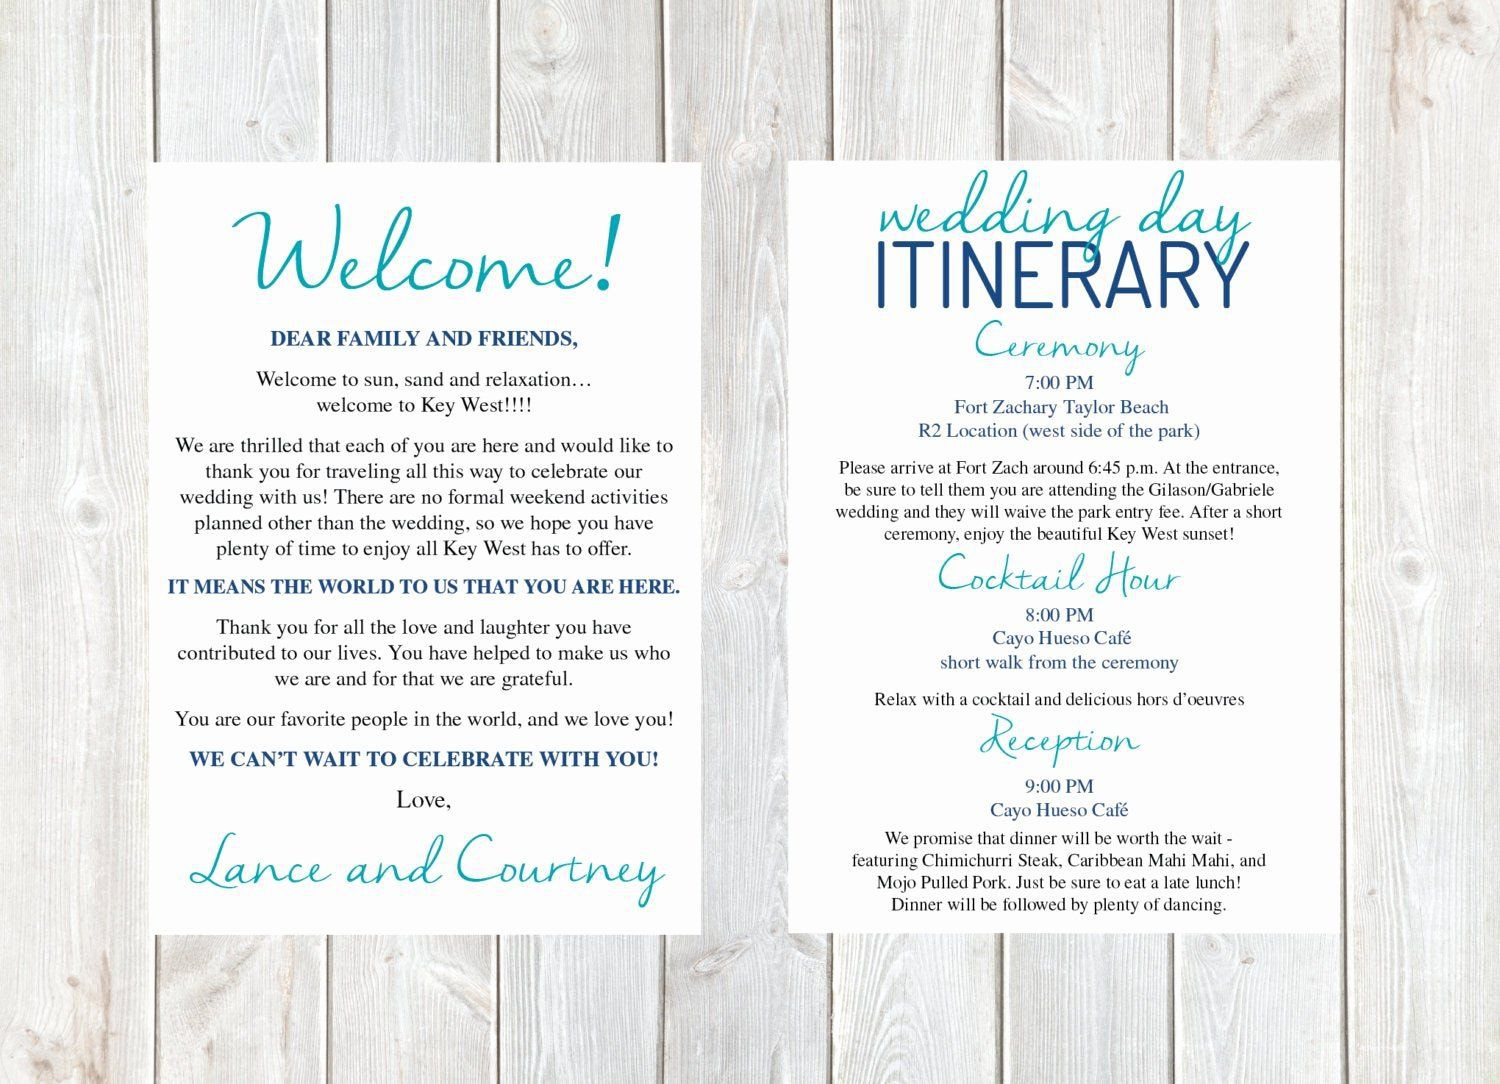 000 Fearsome Destination Wedding Welcome Letter Template Photo  And ItineraryFull